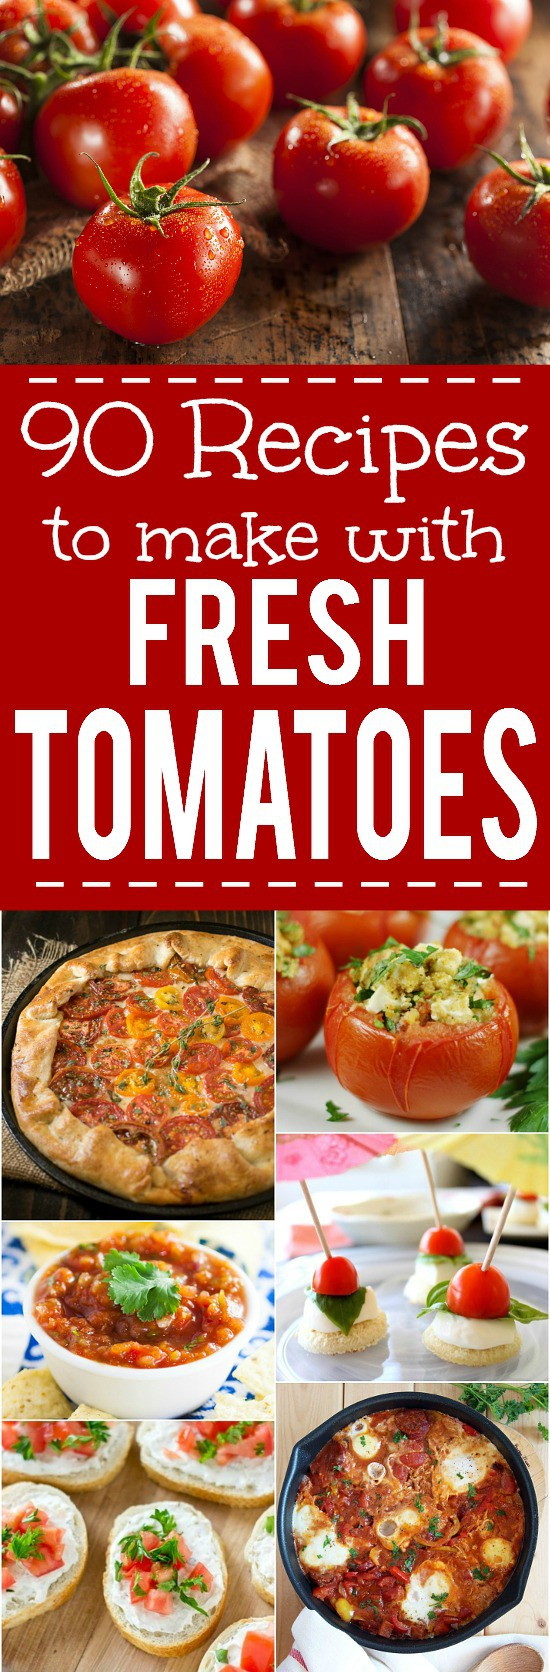 88 Recipes with Fresh Tomatoes -Use up your fresh, juicy tomato harvest this Summer with these 88 of the absolute BEST Recipes with Fresh Tomatoes that are sure to have you celebrating your garden,from cherry or grape tomatoes, to beefsteak or heirloom tomatoes!